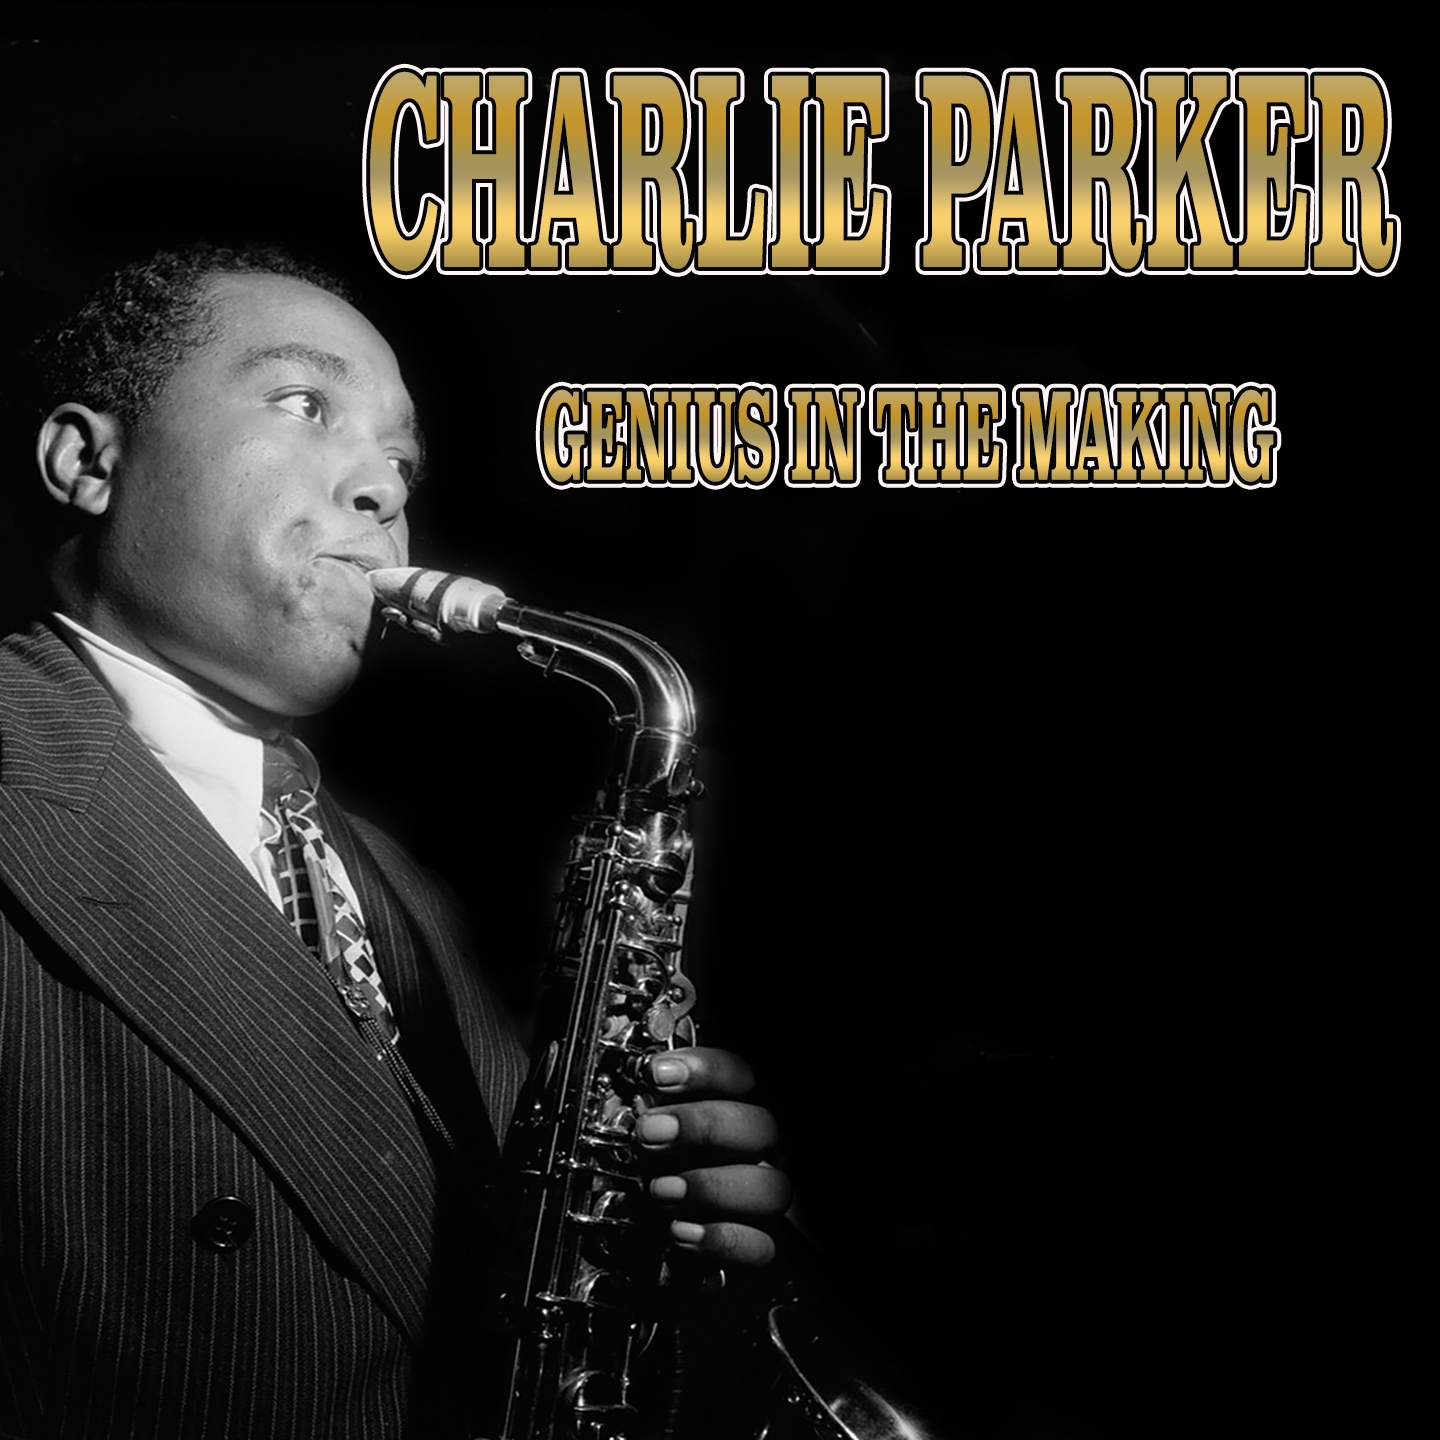 The Best of Charlie Parker's Early Years - Swingmatism, Hootie Blues, Tiny's Tempo, And 21 Other Hits